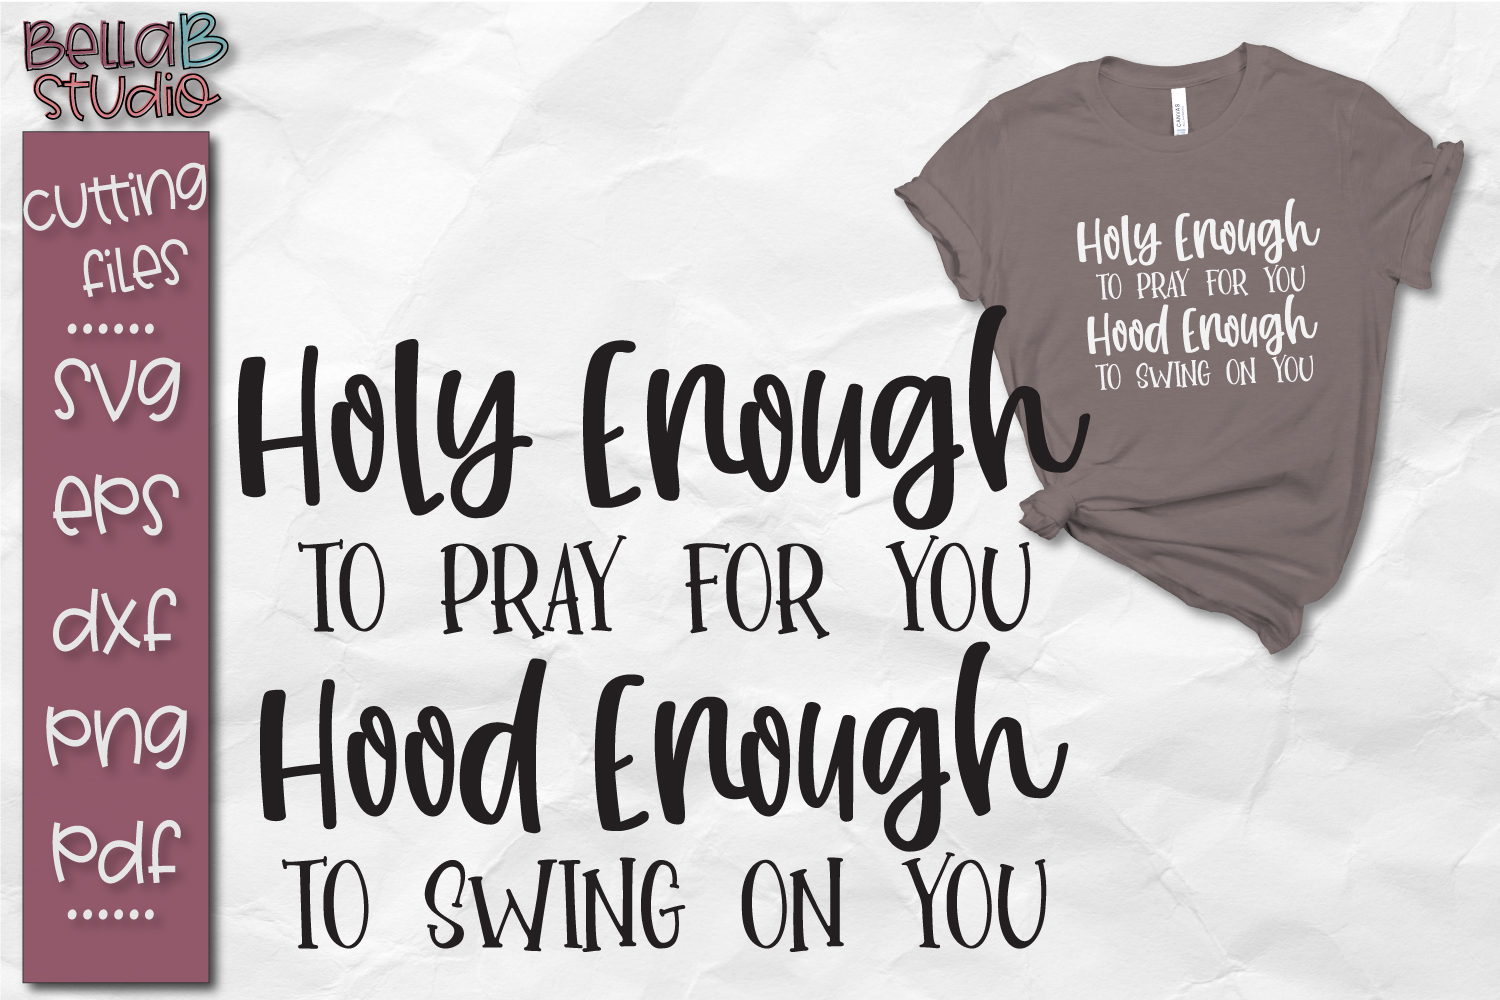 Holy Enough To Pray For You Hood Enough To Swing On You SVG example image 1